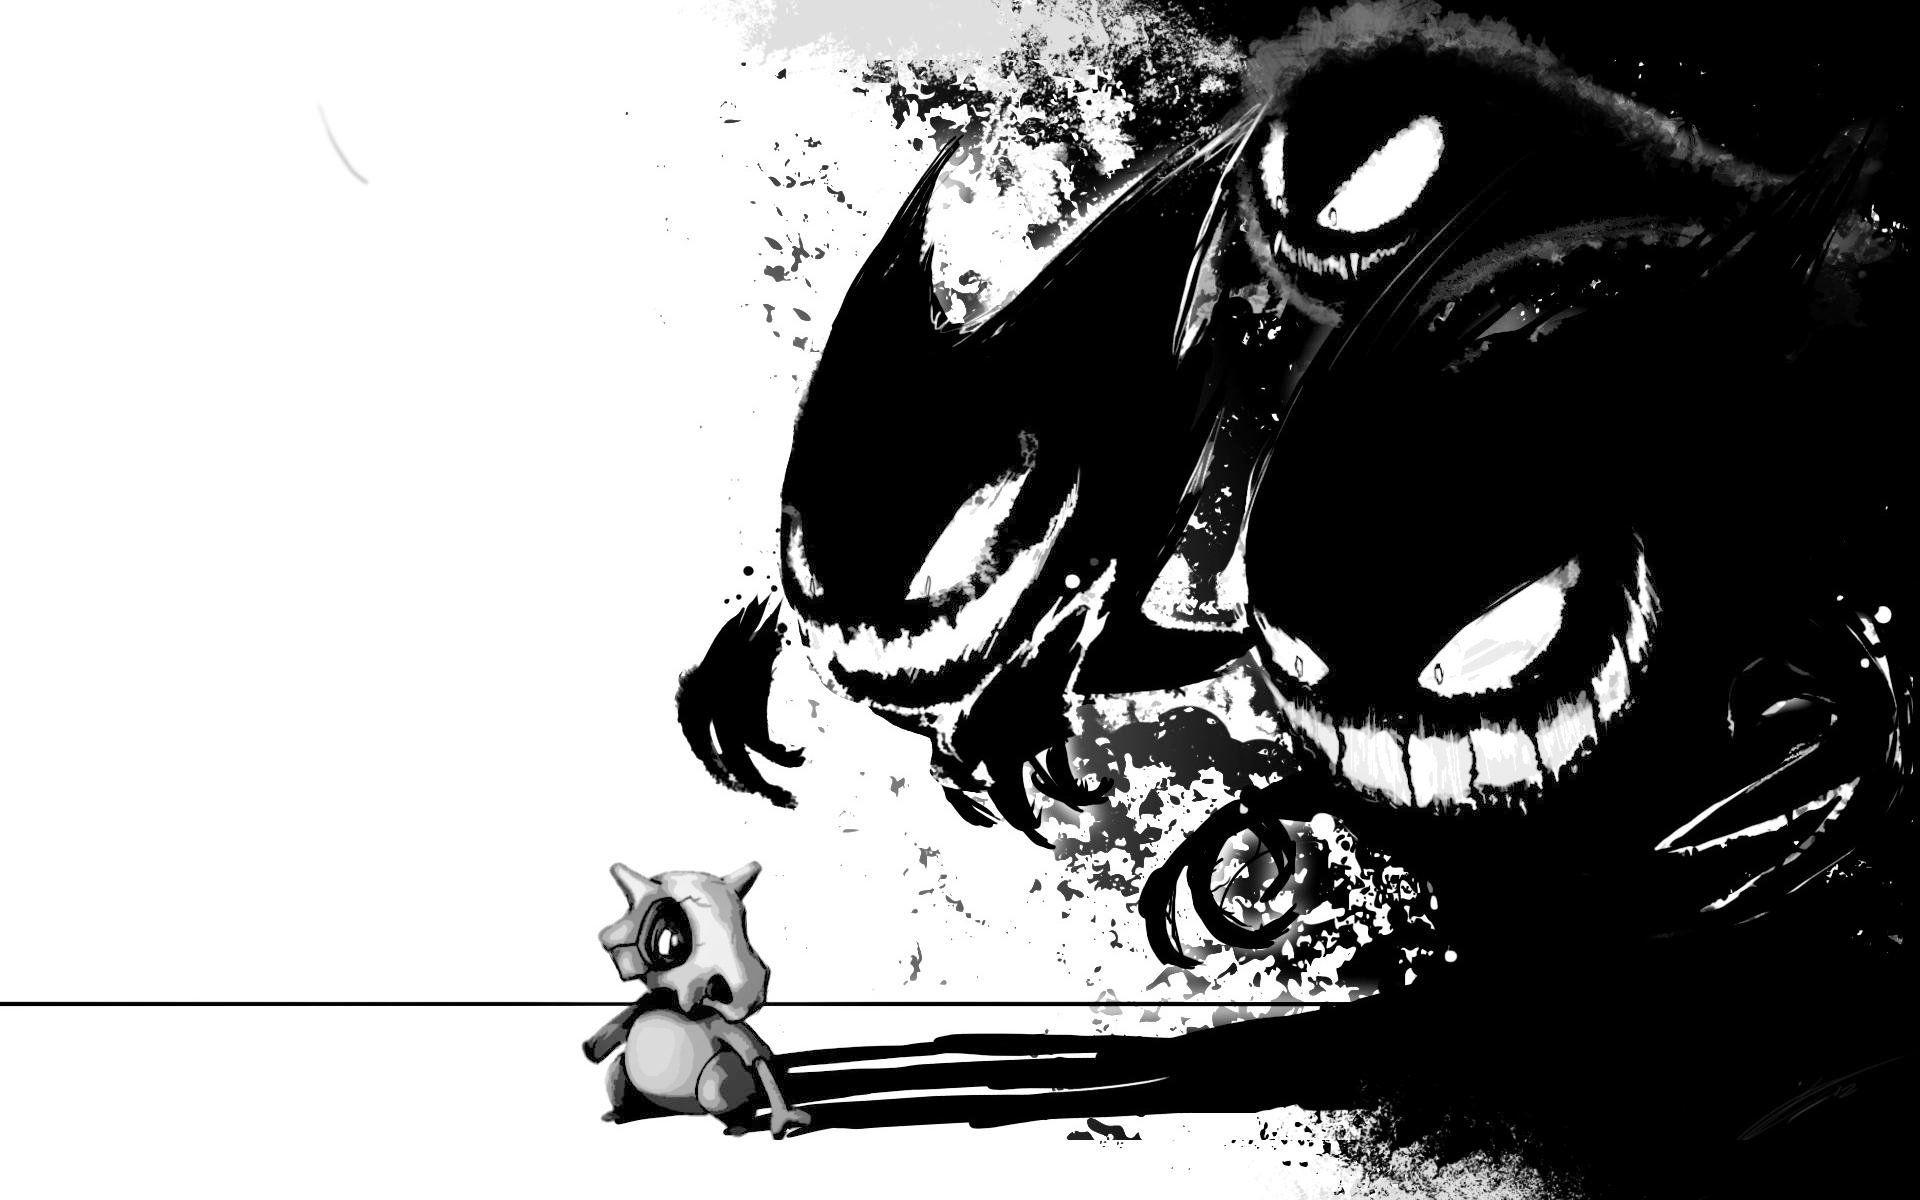 19 Gastly (Pokémon) HD Wallpapers | Background Images - Wallpaper ...